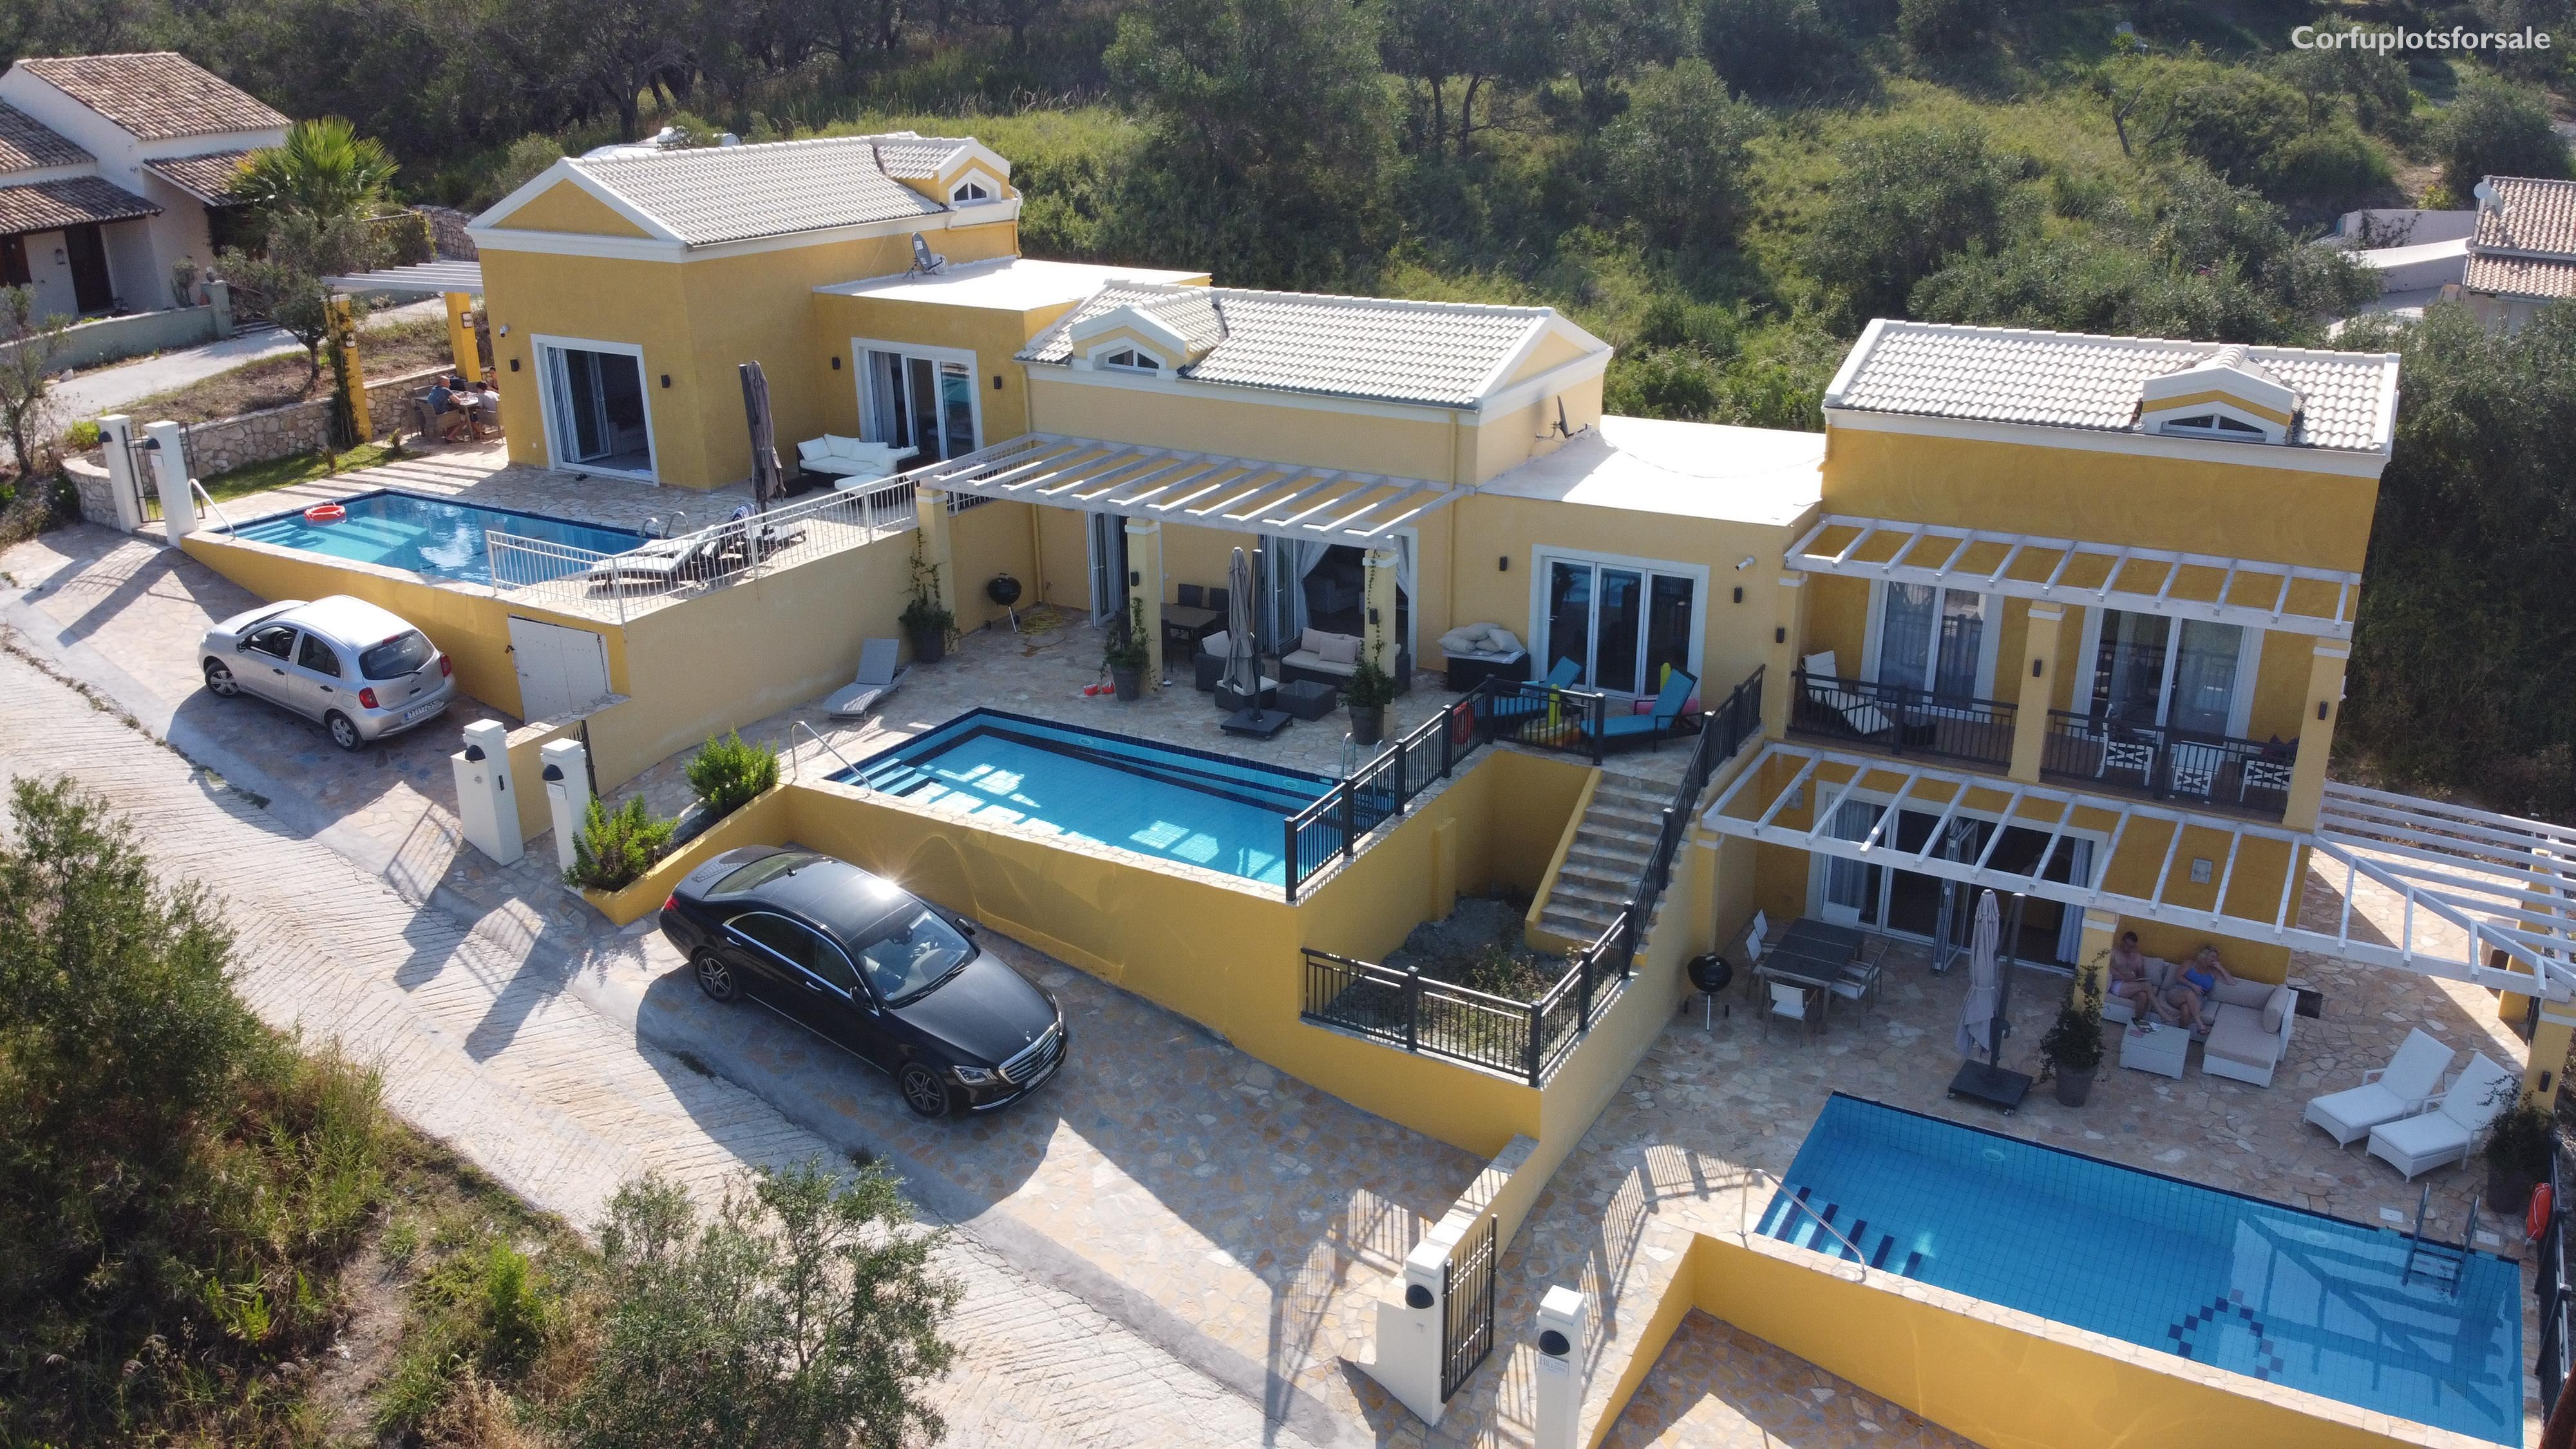 Three attached villas of 67 sq.m with attic and basement